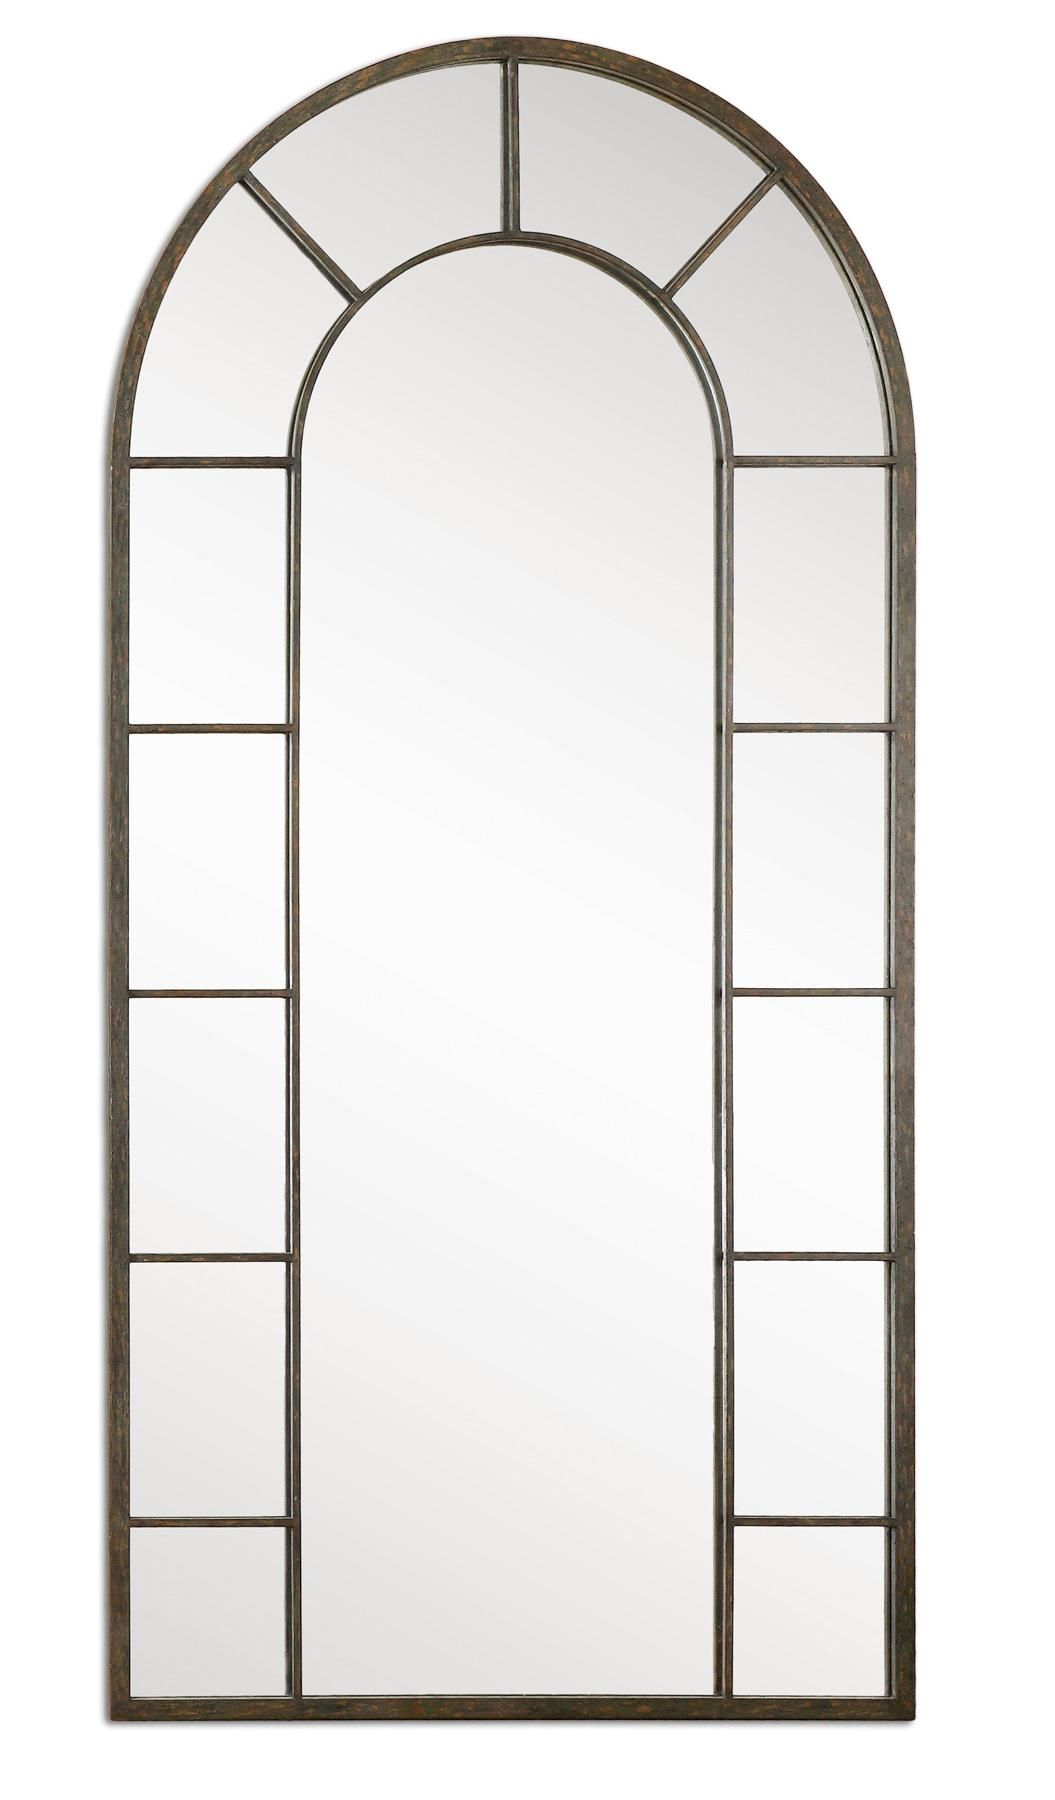 Uttermost Mirrors Dillingham - Item Number: 10505